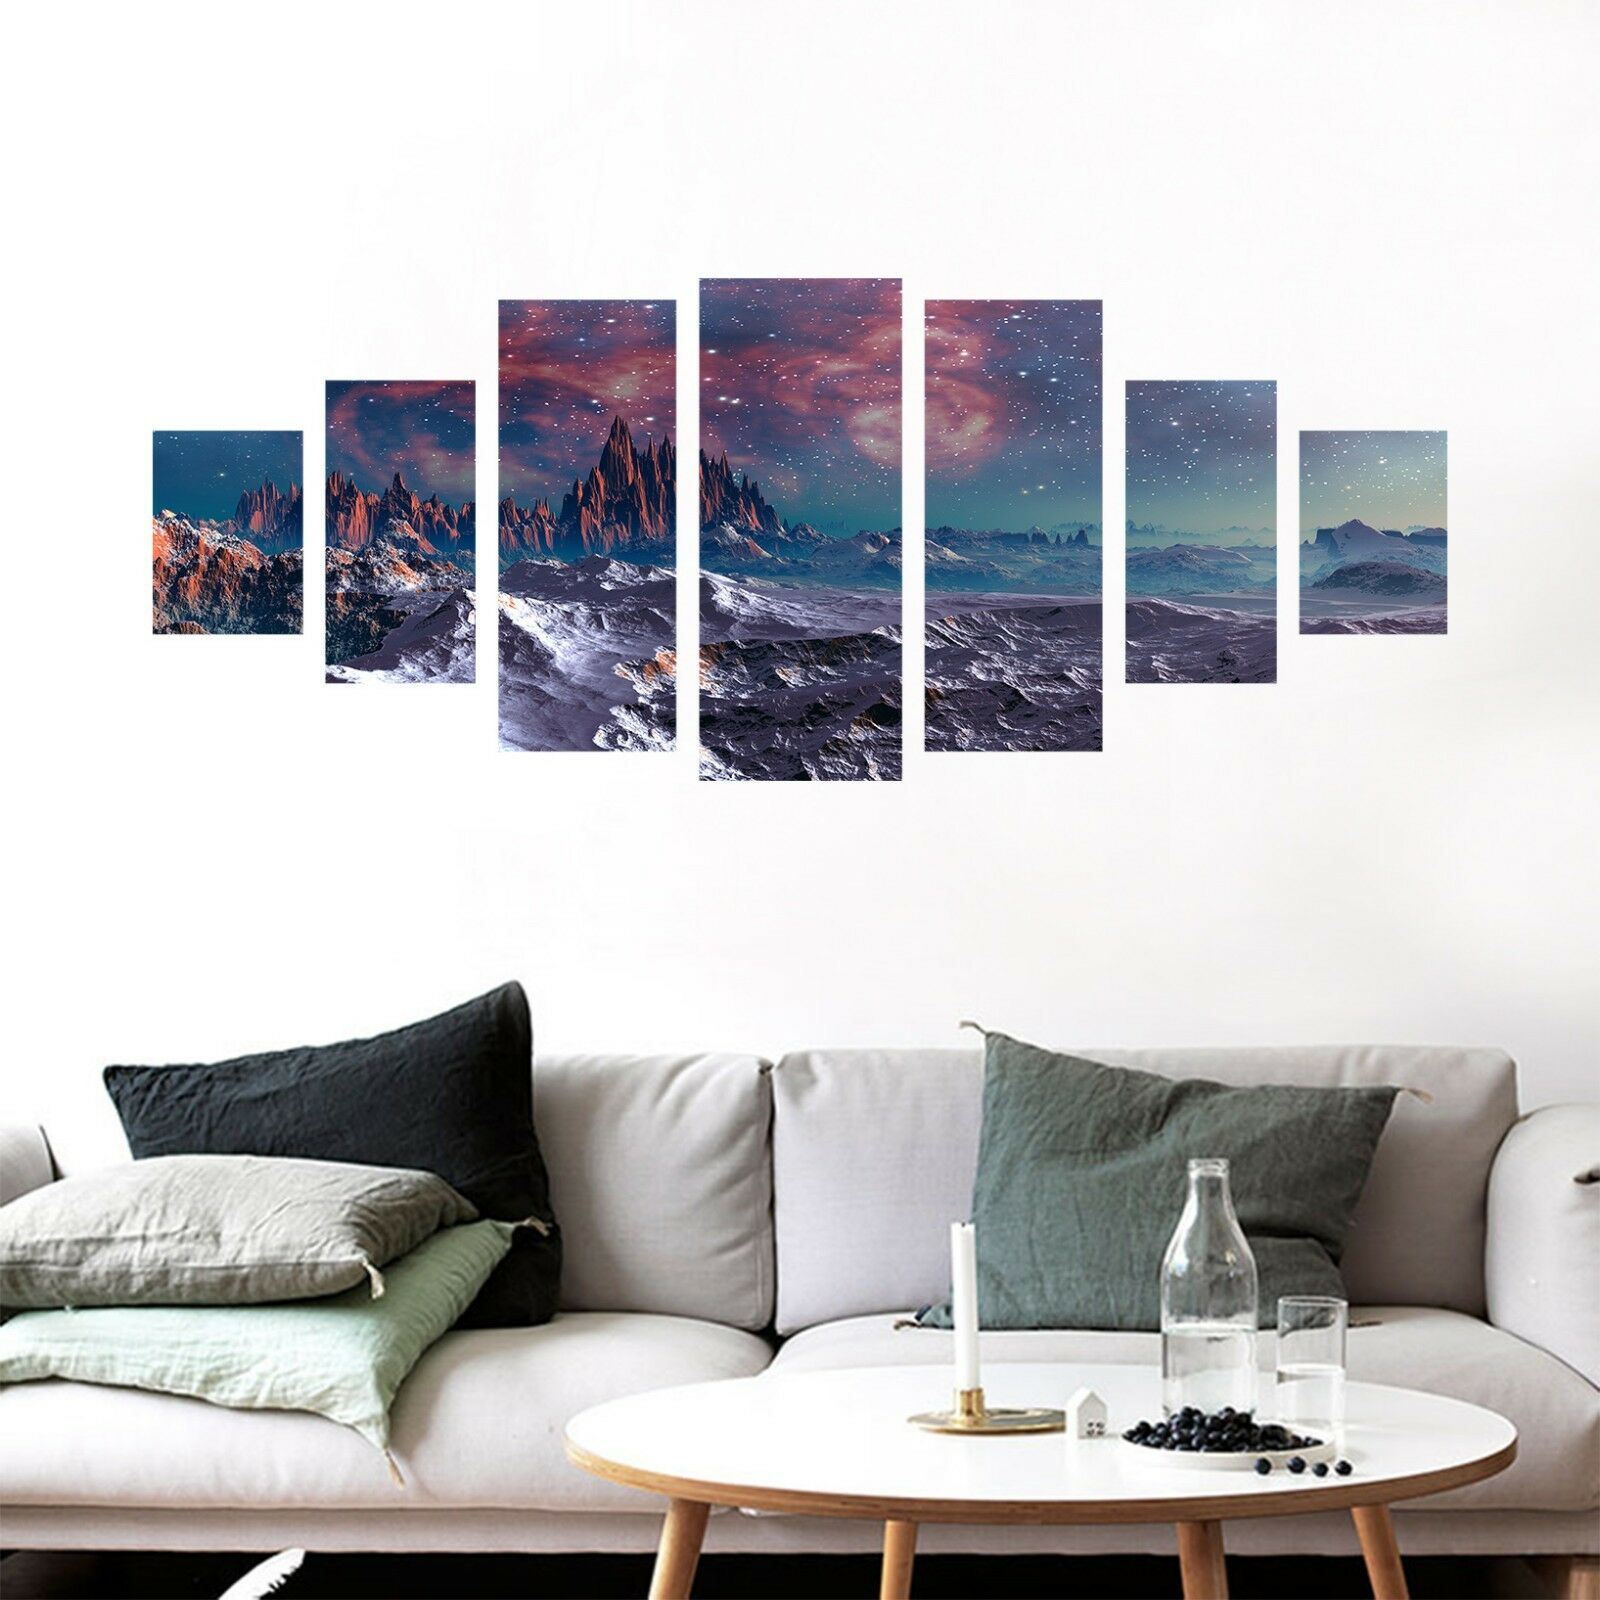 3D Night Hills 74 Unframed Print Wall Paper Decal Wall Deco Indoor AJ Jenny